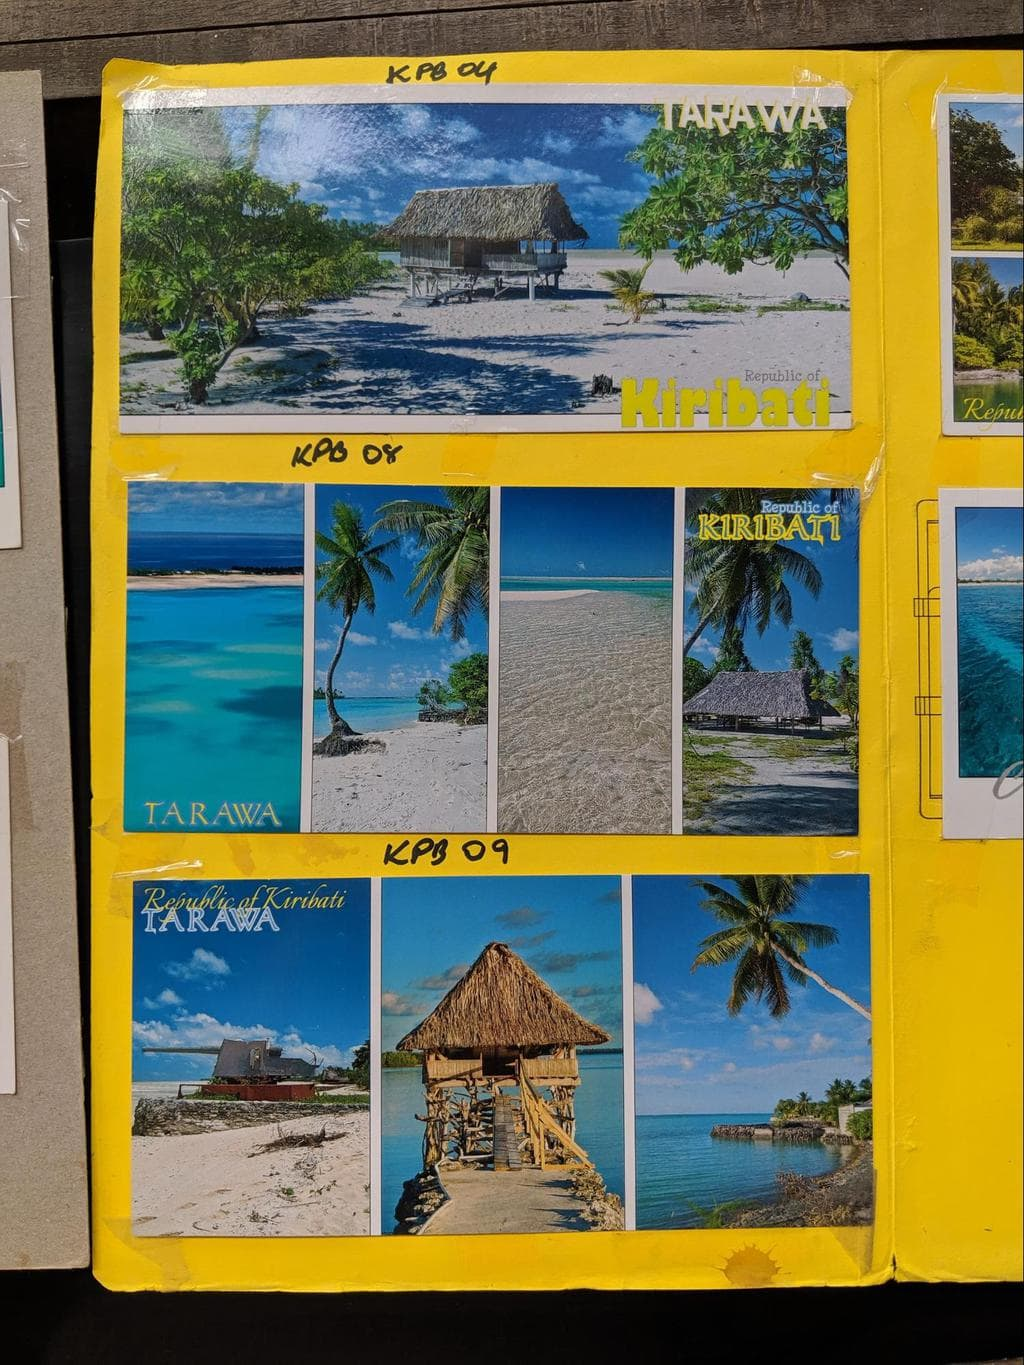 Postcards from Kiribati